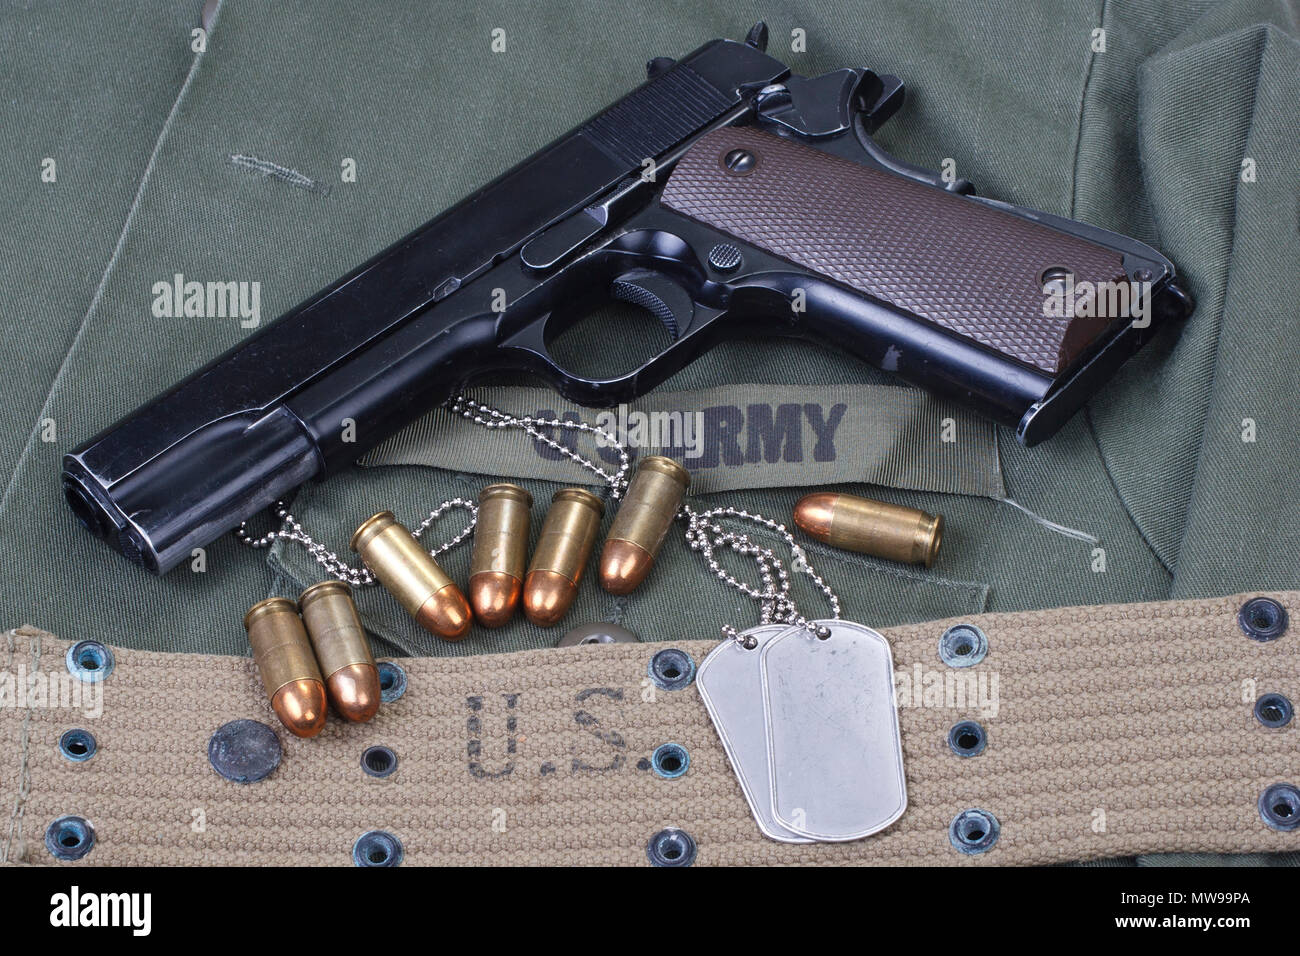 M1911 government with US ARMY uniform - Stock Image